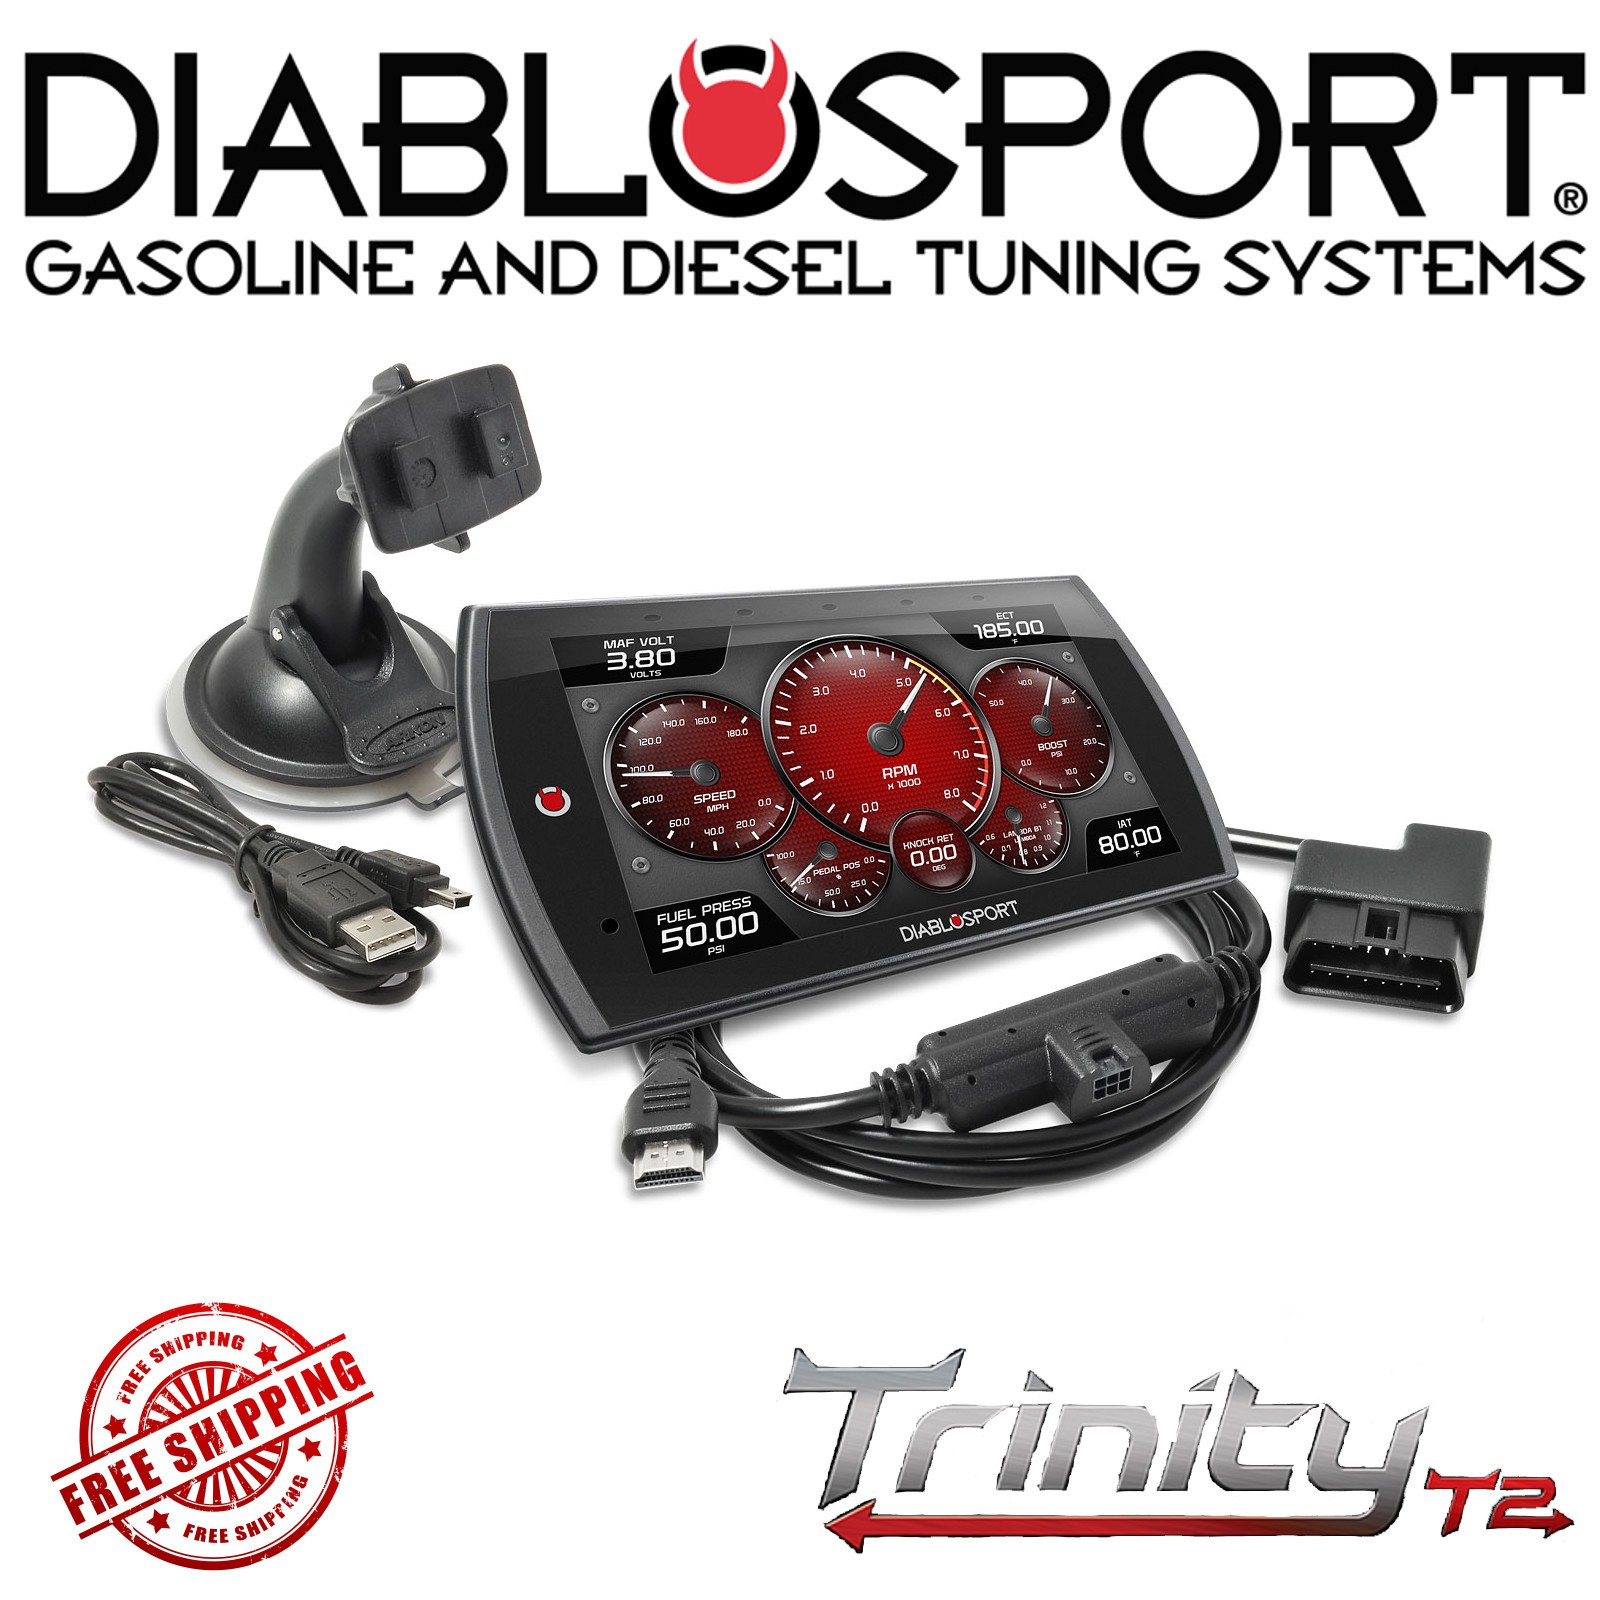 Fits 2000-2005 Ford Excursion Performance Tuner Chip /& Power Tuning Programmer